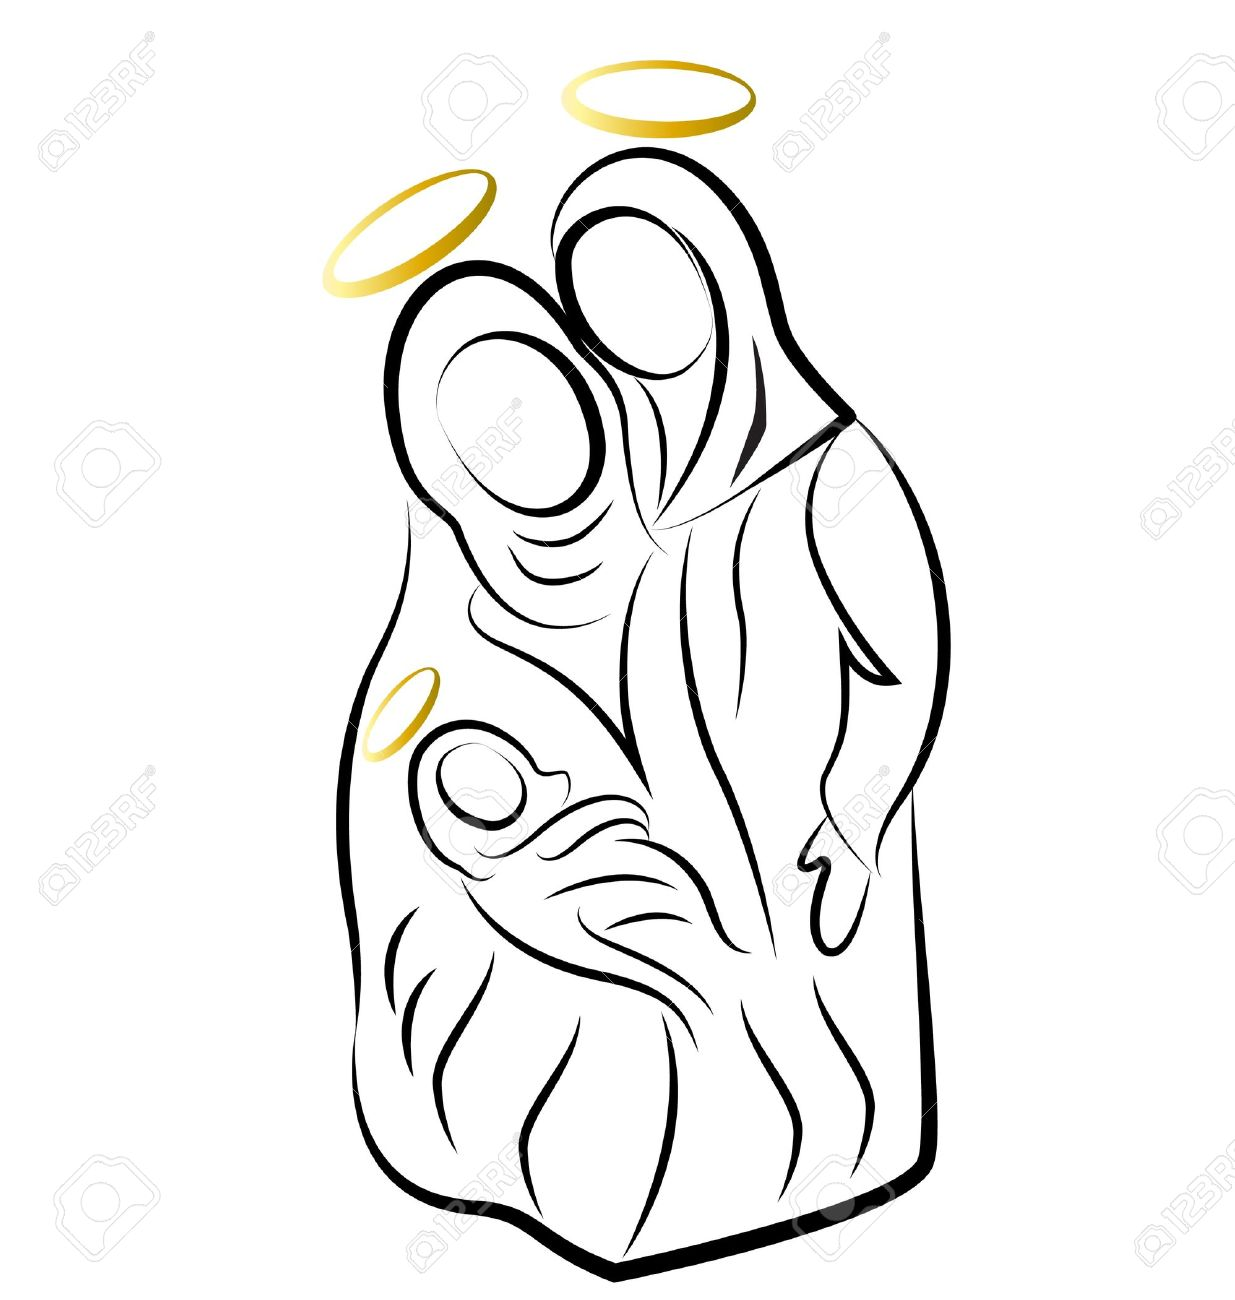 Nativity scene silhouette vector Stock Vector - 16220111